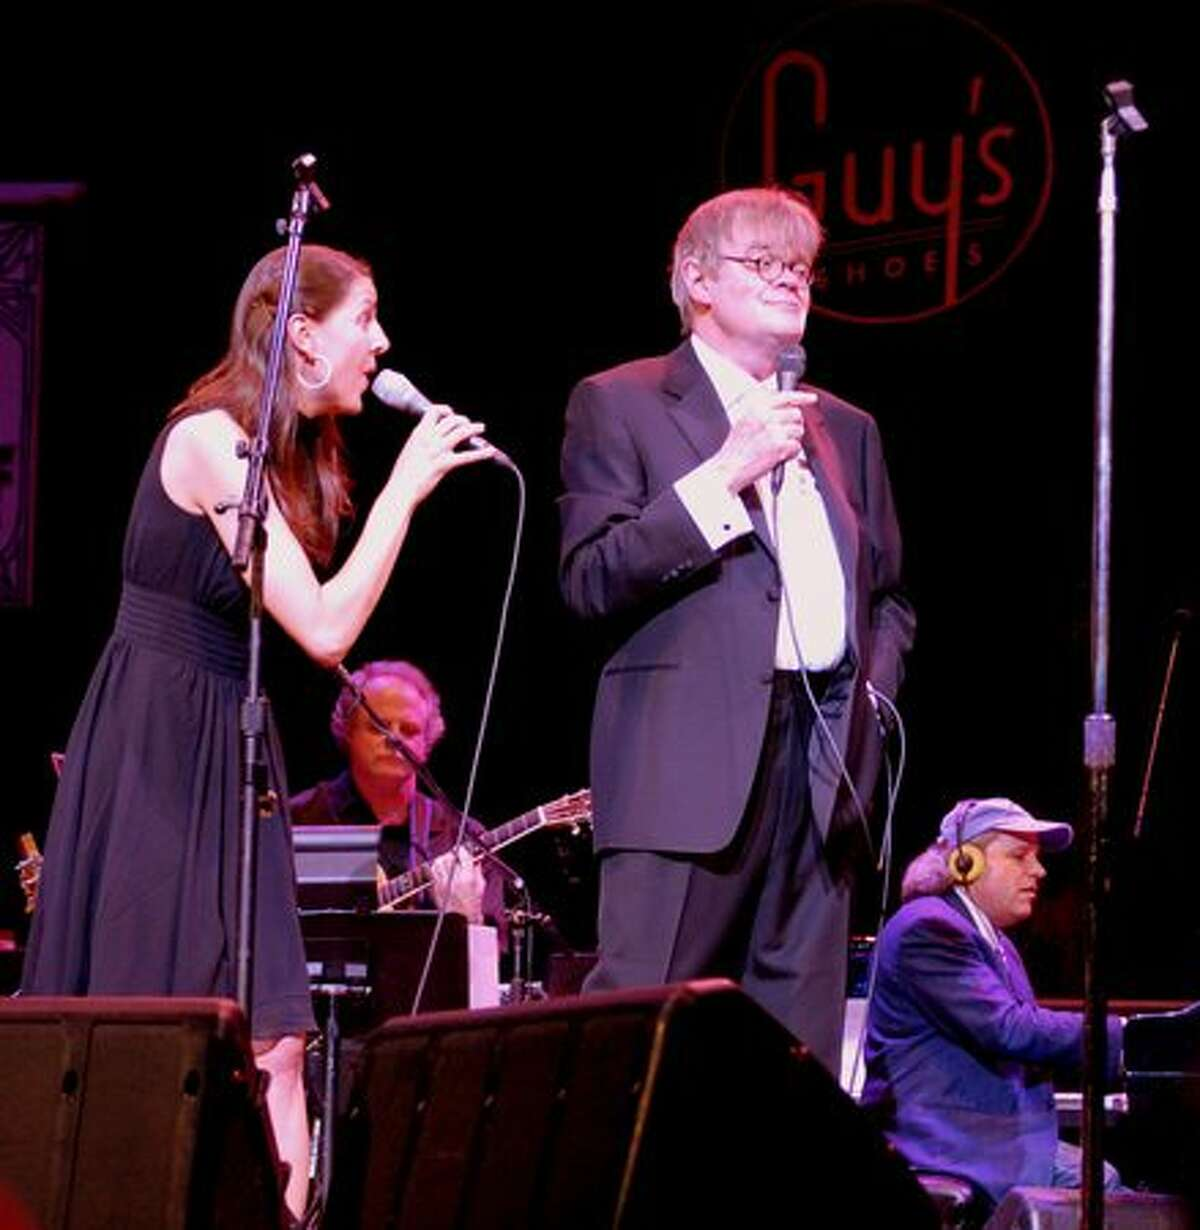 Garrison Keillor and crew perform a live broadcast of